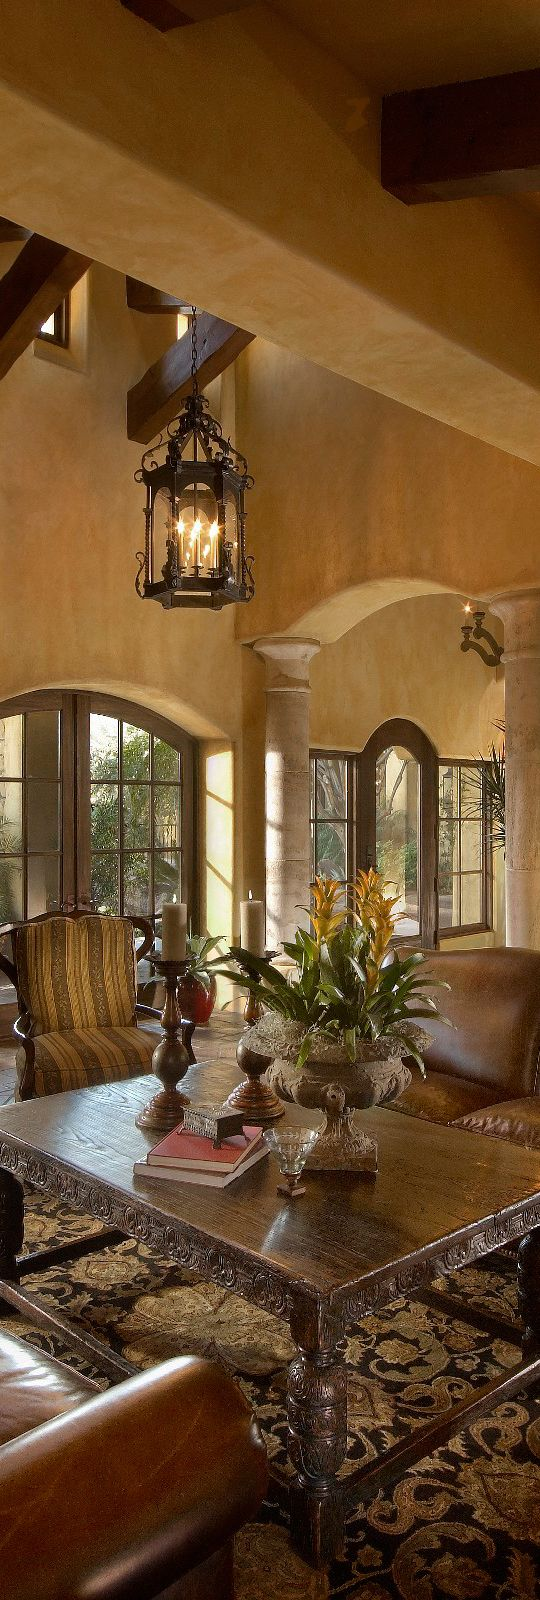 Cozy sitting area. Love all the arched windows. Mediterranean | Tuscany |  Old World